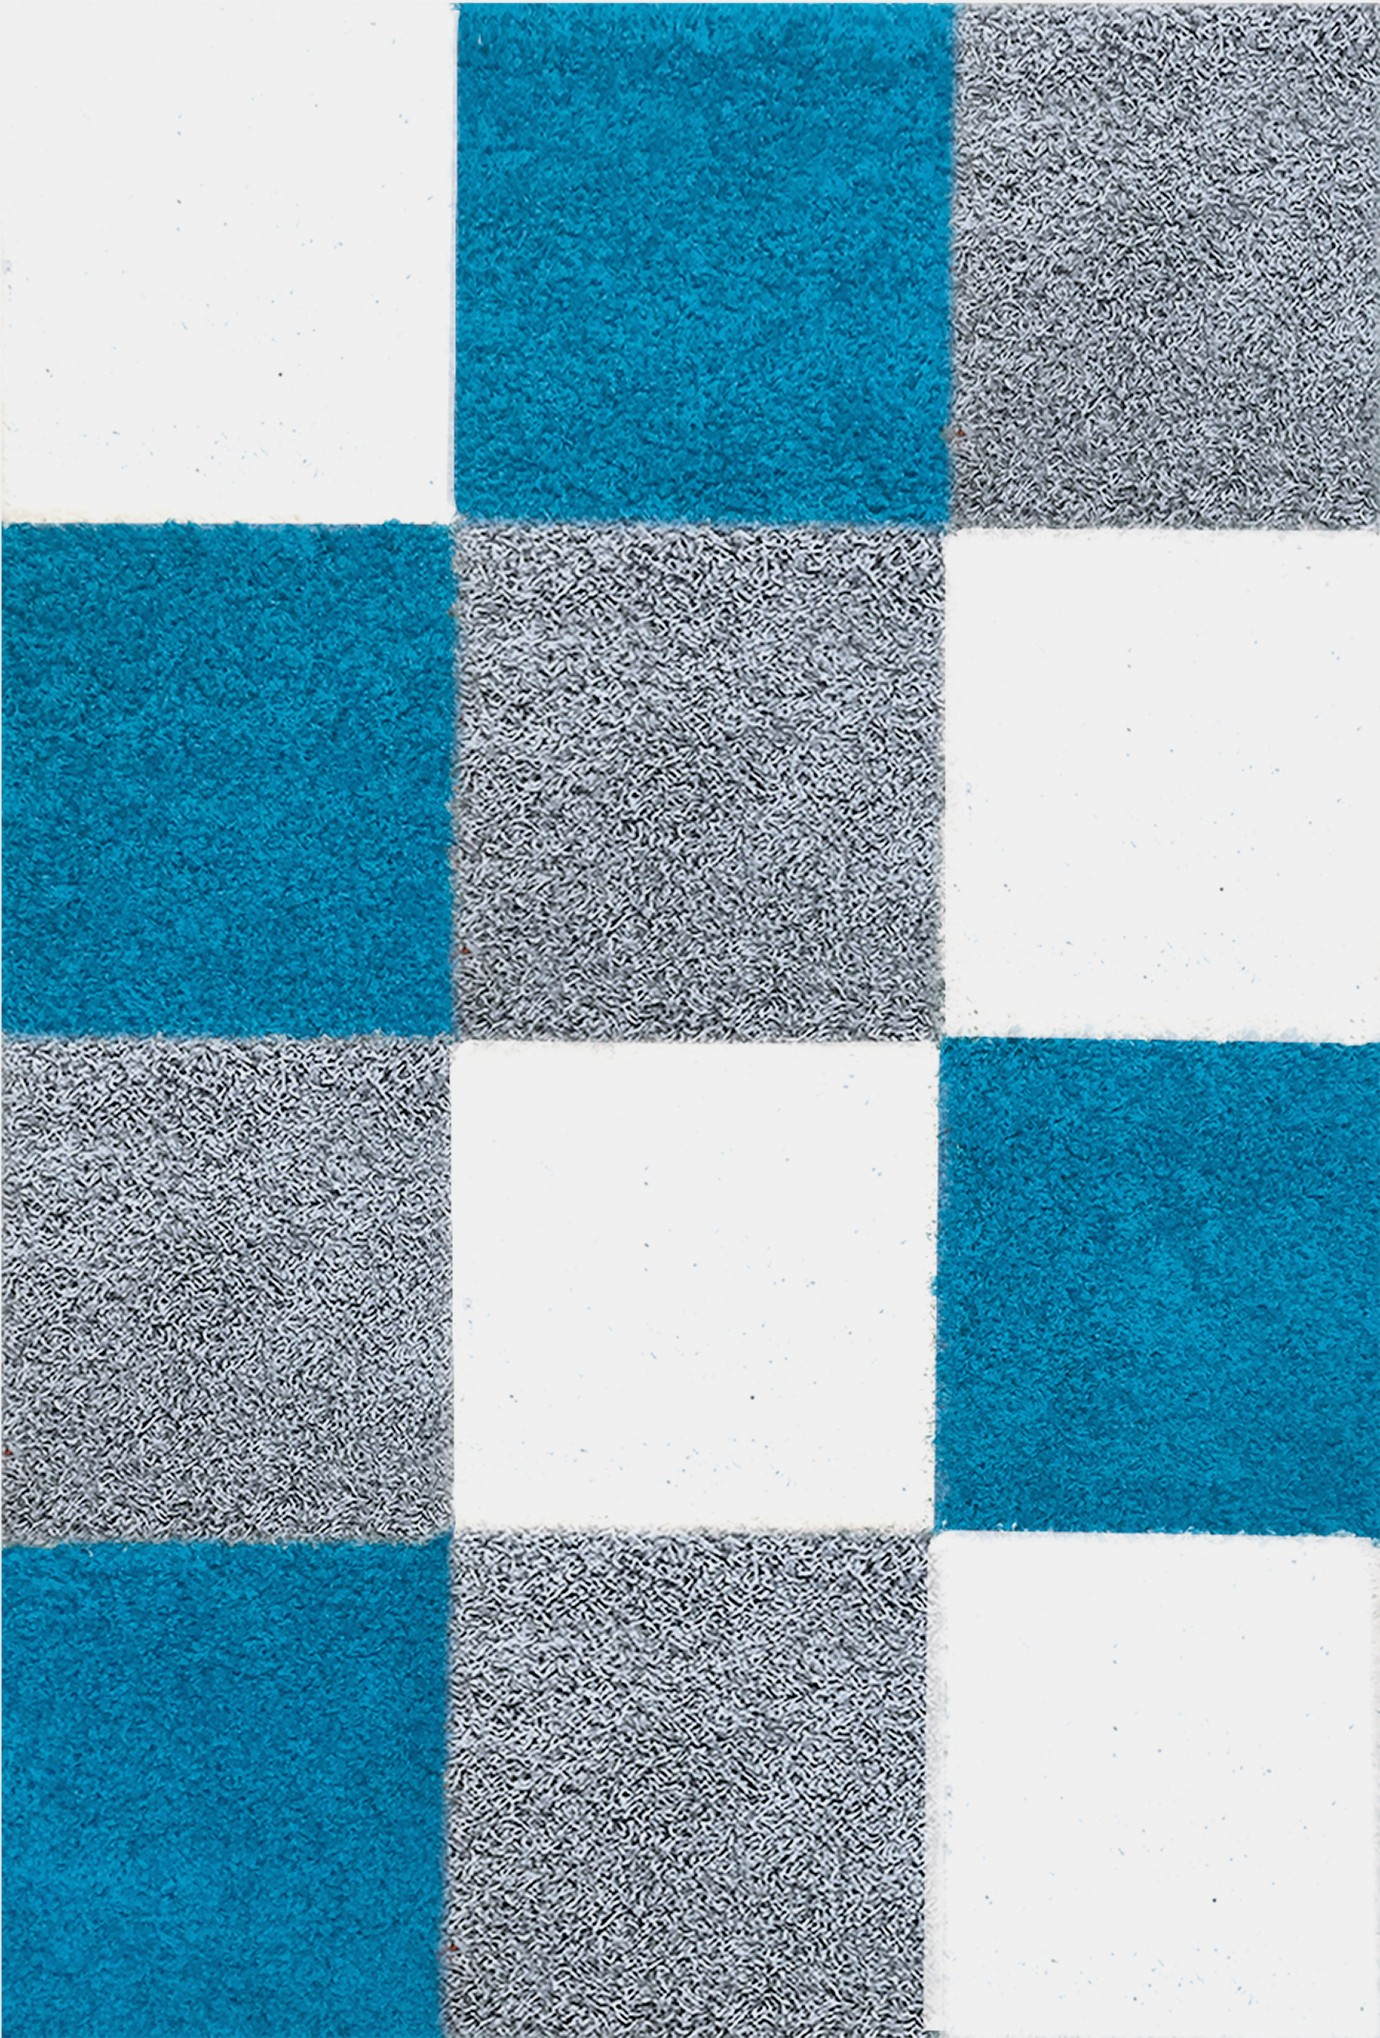 Tapis shaggy longues m ches turquoise gris cream hautes for Tapis turquoise et gris